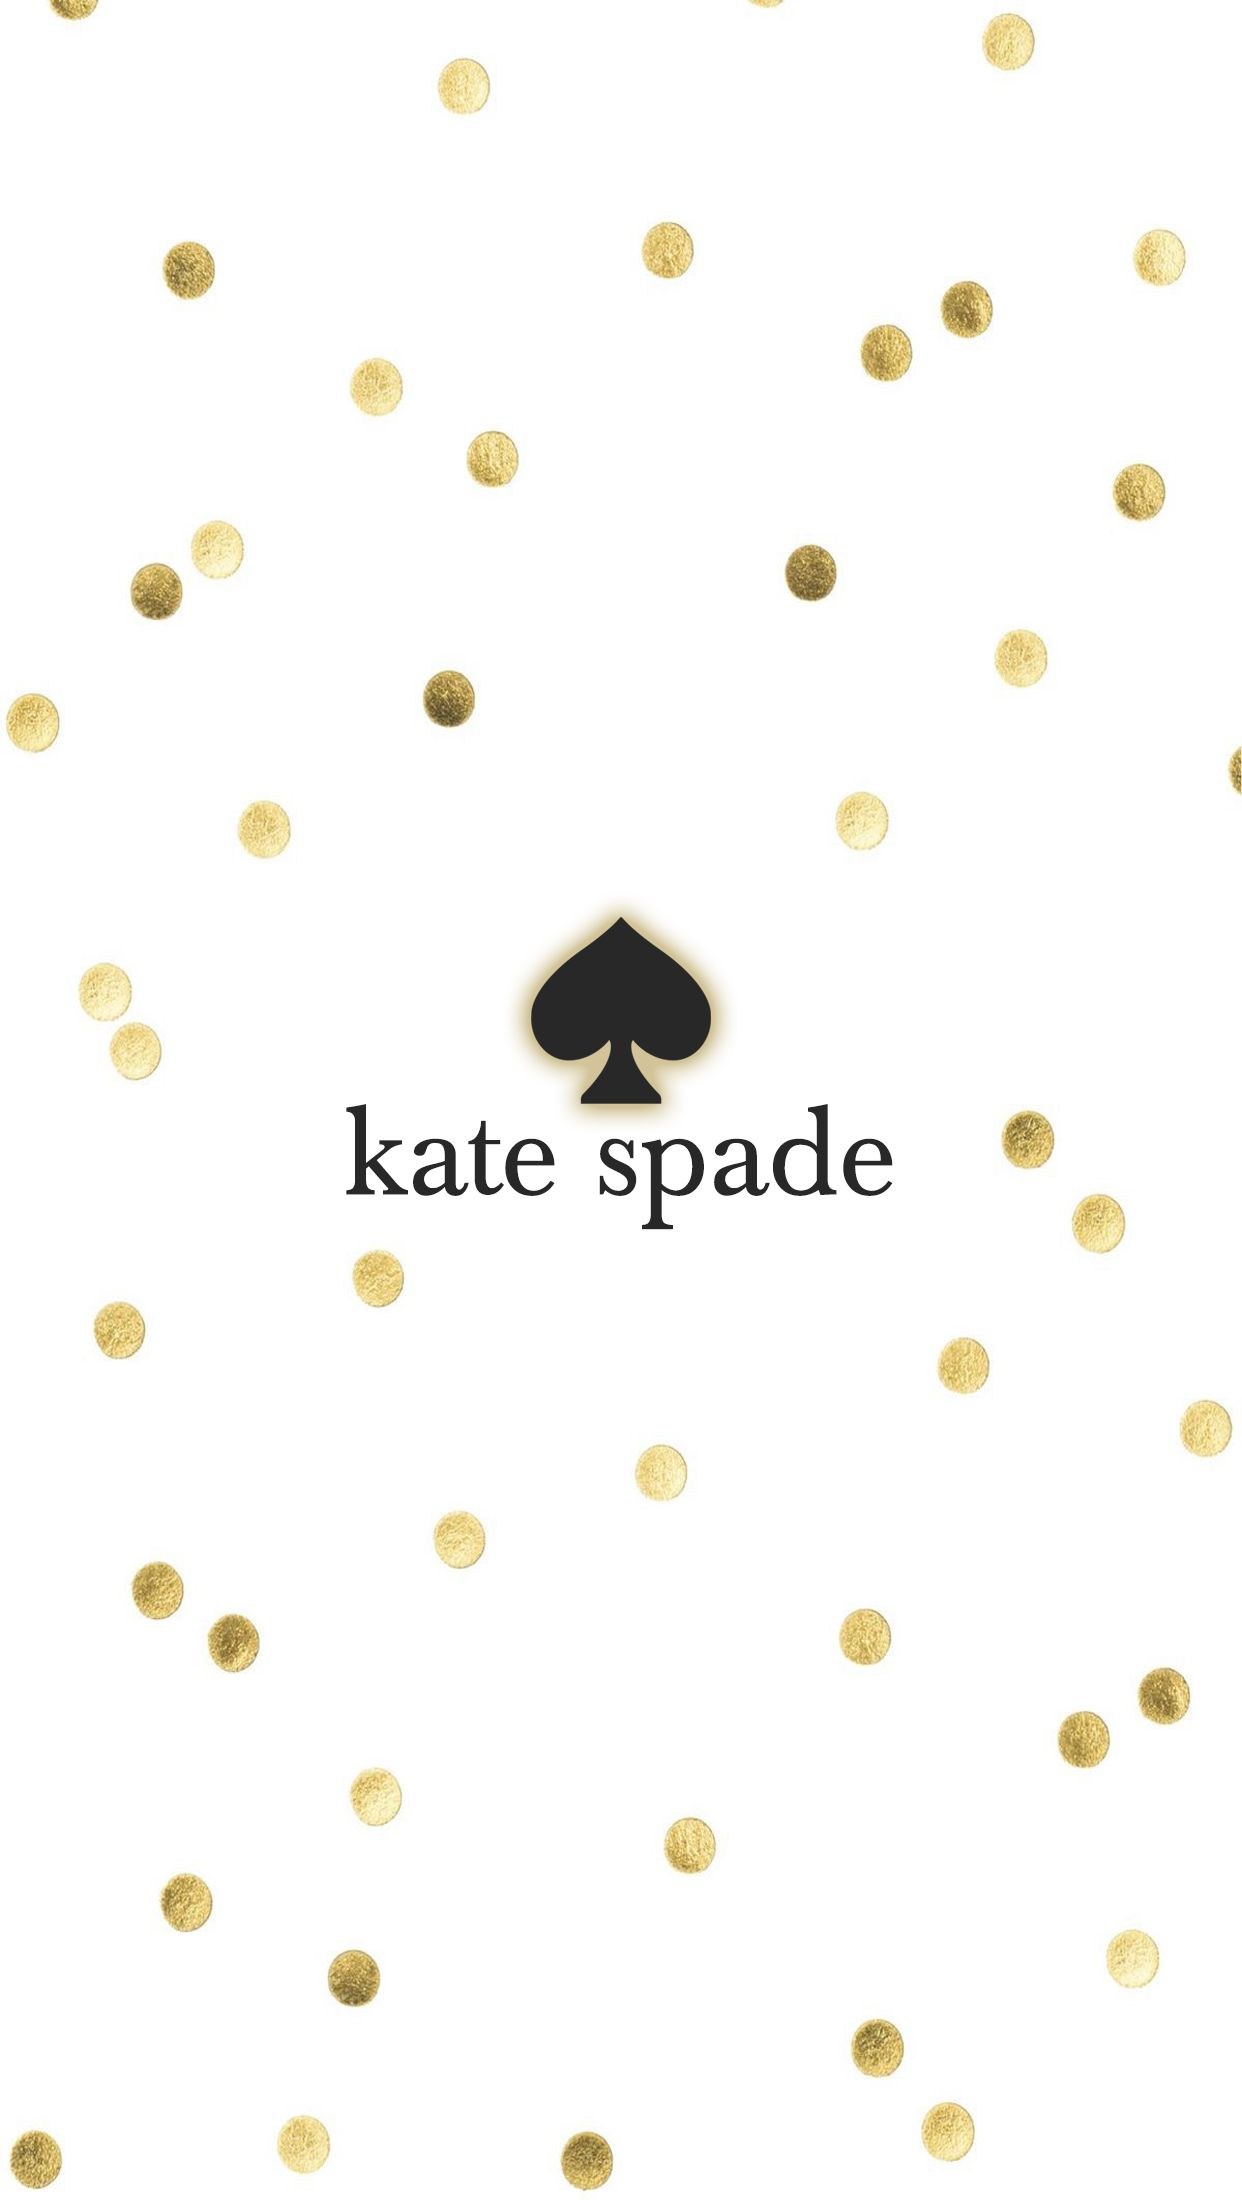 kate spade phone wallpaper  Kate spade gold iPhone Wallpaper Background | wallpapers | Pinterest ...